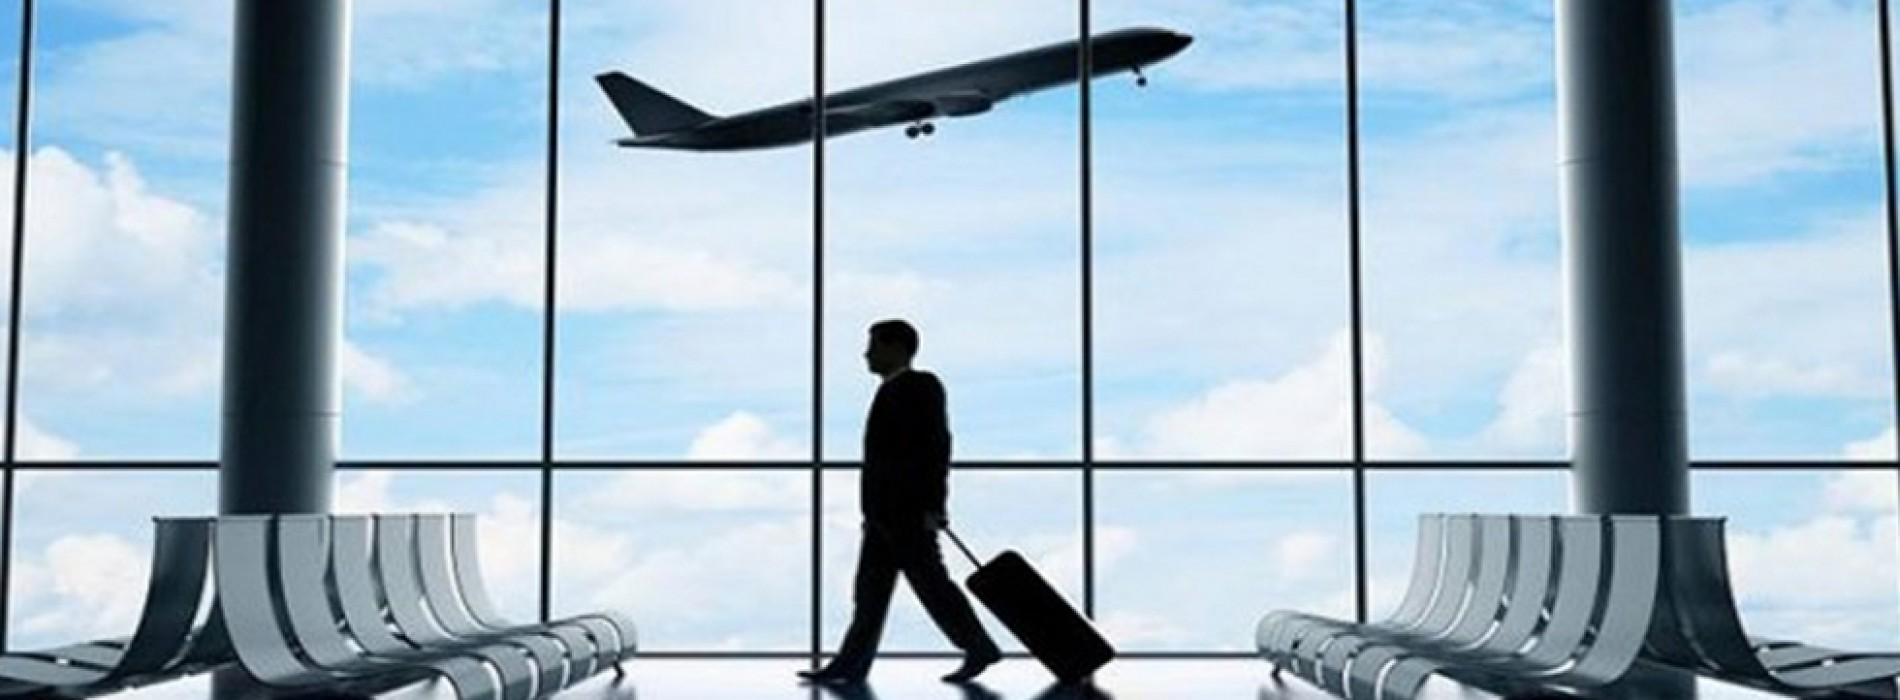 Indian aviation ramps up tech investment to meet rapid pax growth